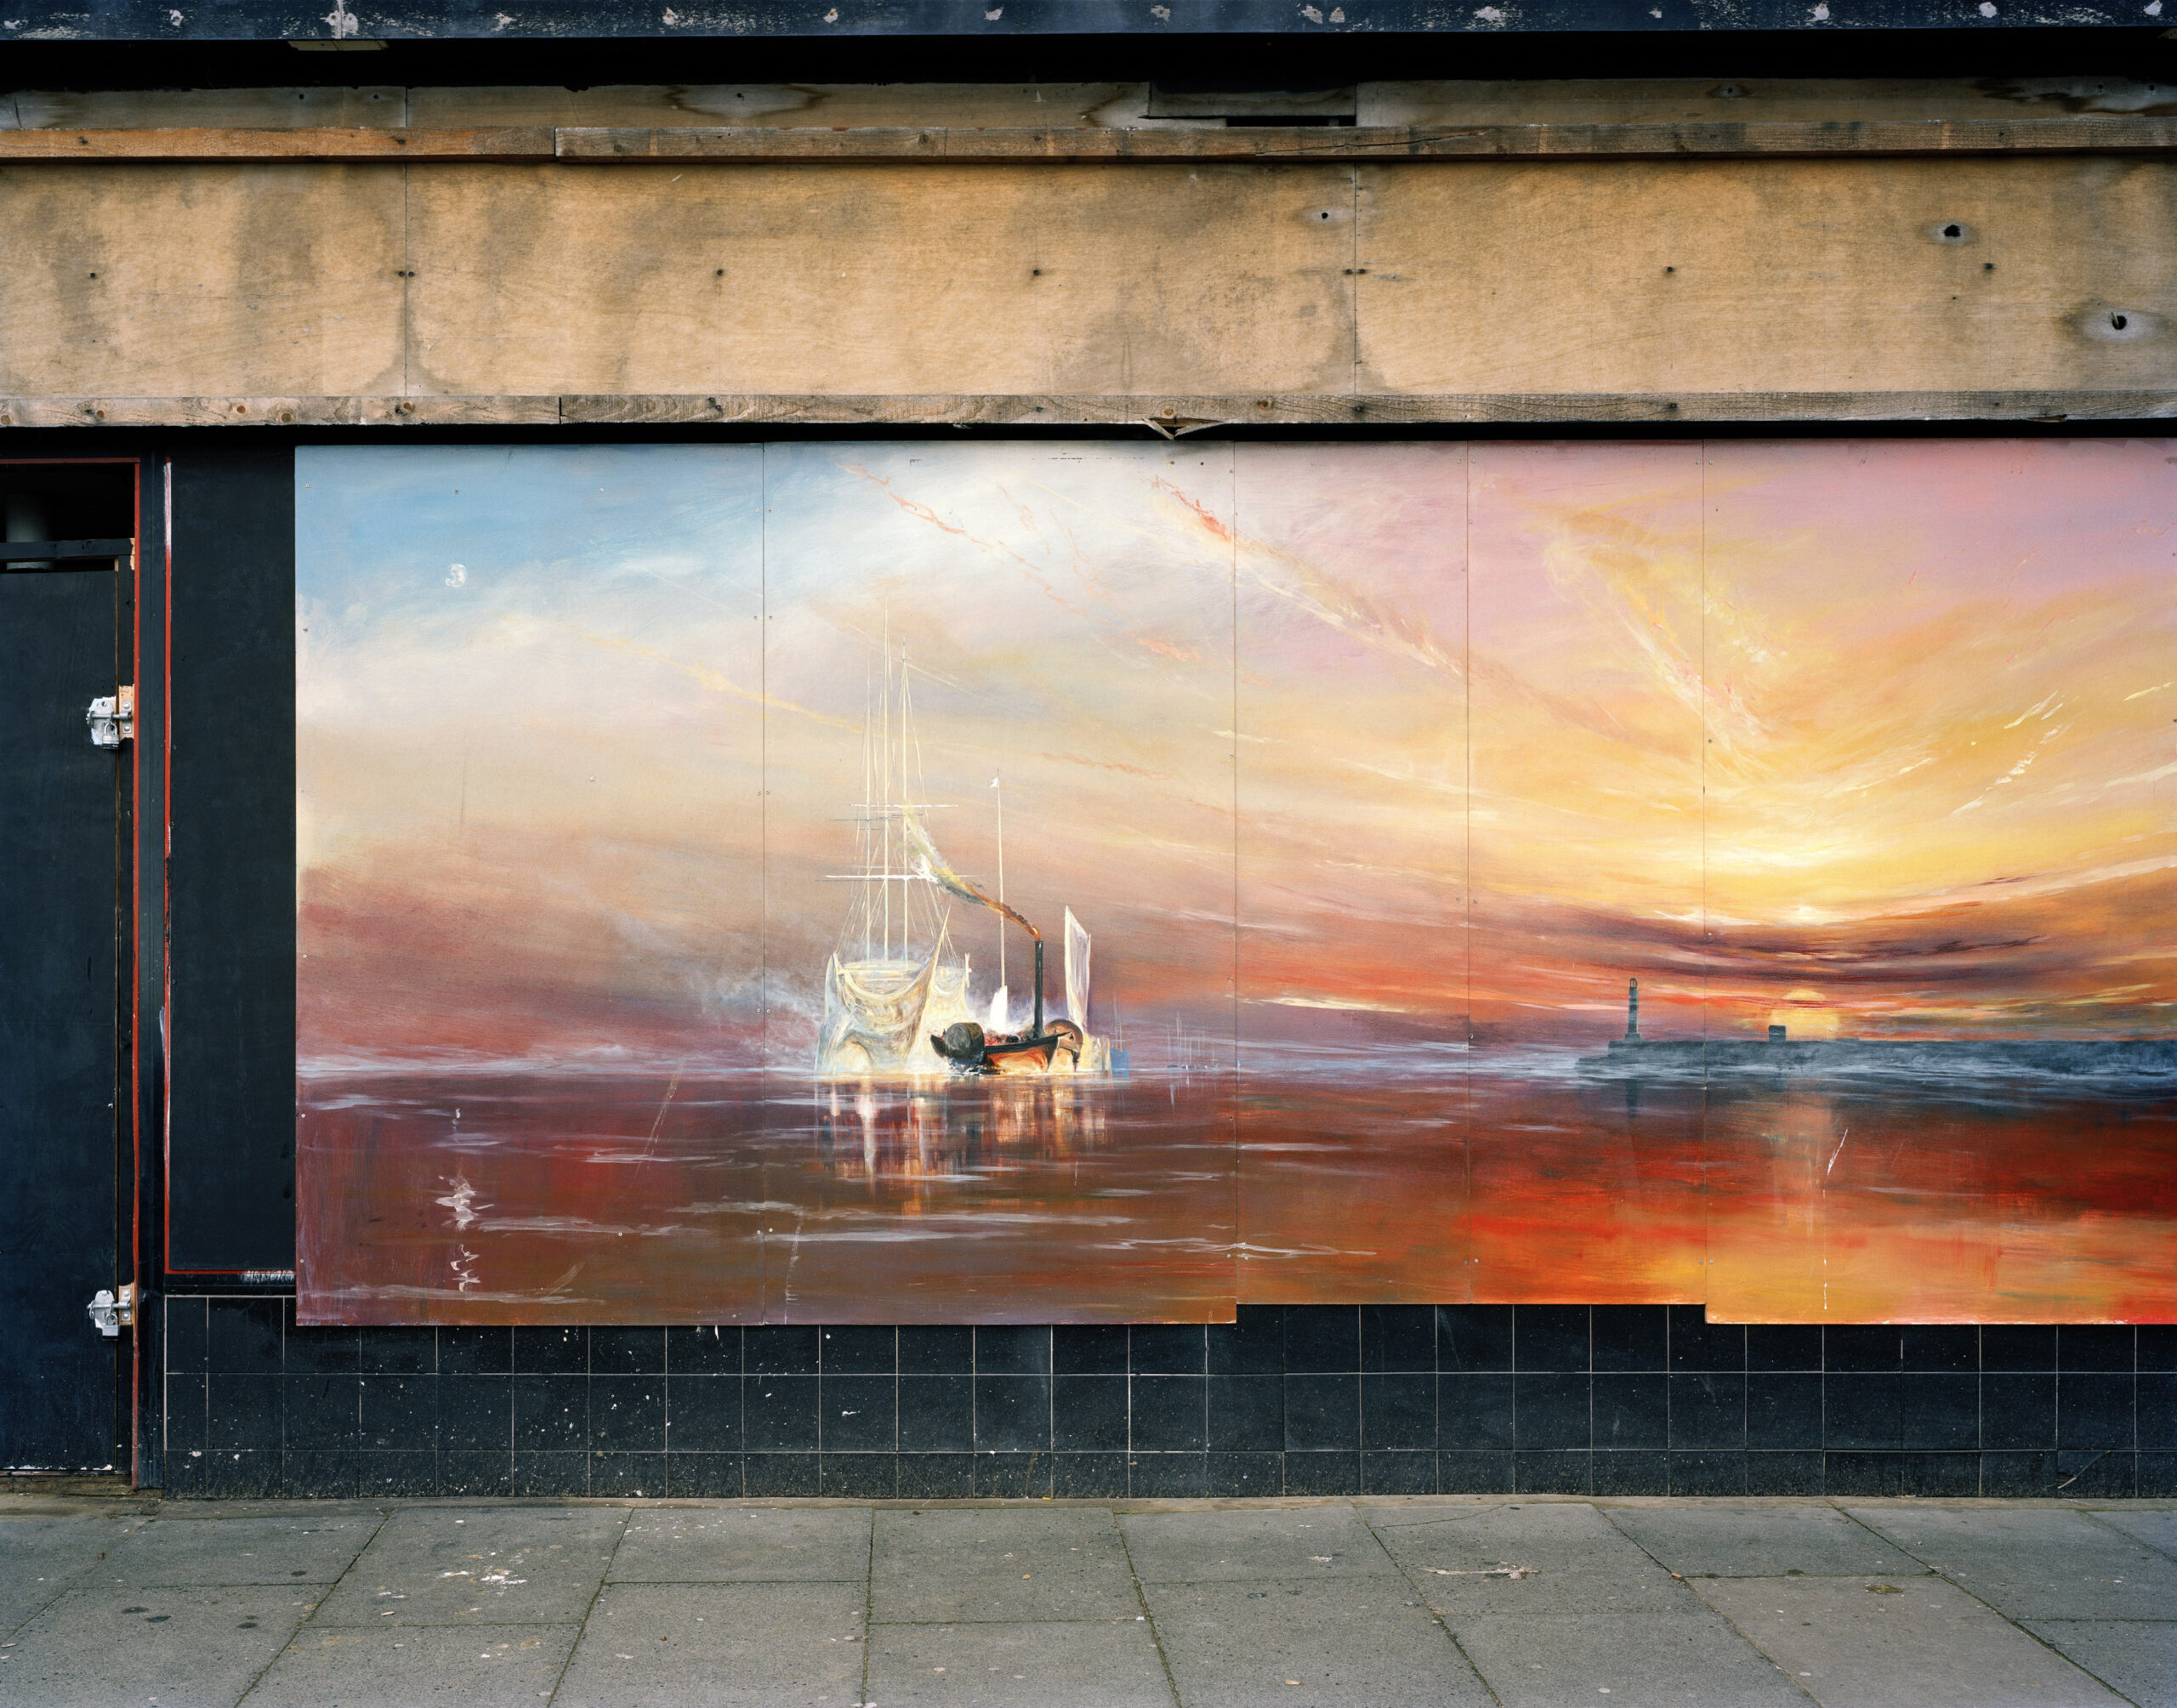 GB. England. Kent. Margate. Mural of JMW Turner's 'The Fighting Temeraire' on an empty shopfront. Margate will be the home of the new Turner Centre, due to  open in 2010. January 2009. Contact email: New York : photography@magnumphotos.com Paris : magnum@magnumphotos.fr London : magnum@magnumphotos.co.uk Tokyo : tokyo@magnumphotos.co.jp Contact phones: New York : +1 212 929 6000 Paris: + 33 1 53 42 50 00 London: + 44 20 7490 1771 Tokyo: + 81 3 3219 0771 Image URL: http://www.magnumphotos.com/Archive/C.aspx?VP3=ViewBox_VPage&IID=29YL530L7SKC&CT=Image&IT=ZoomImage01_VForm